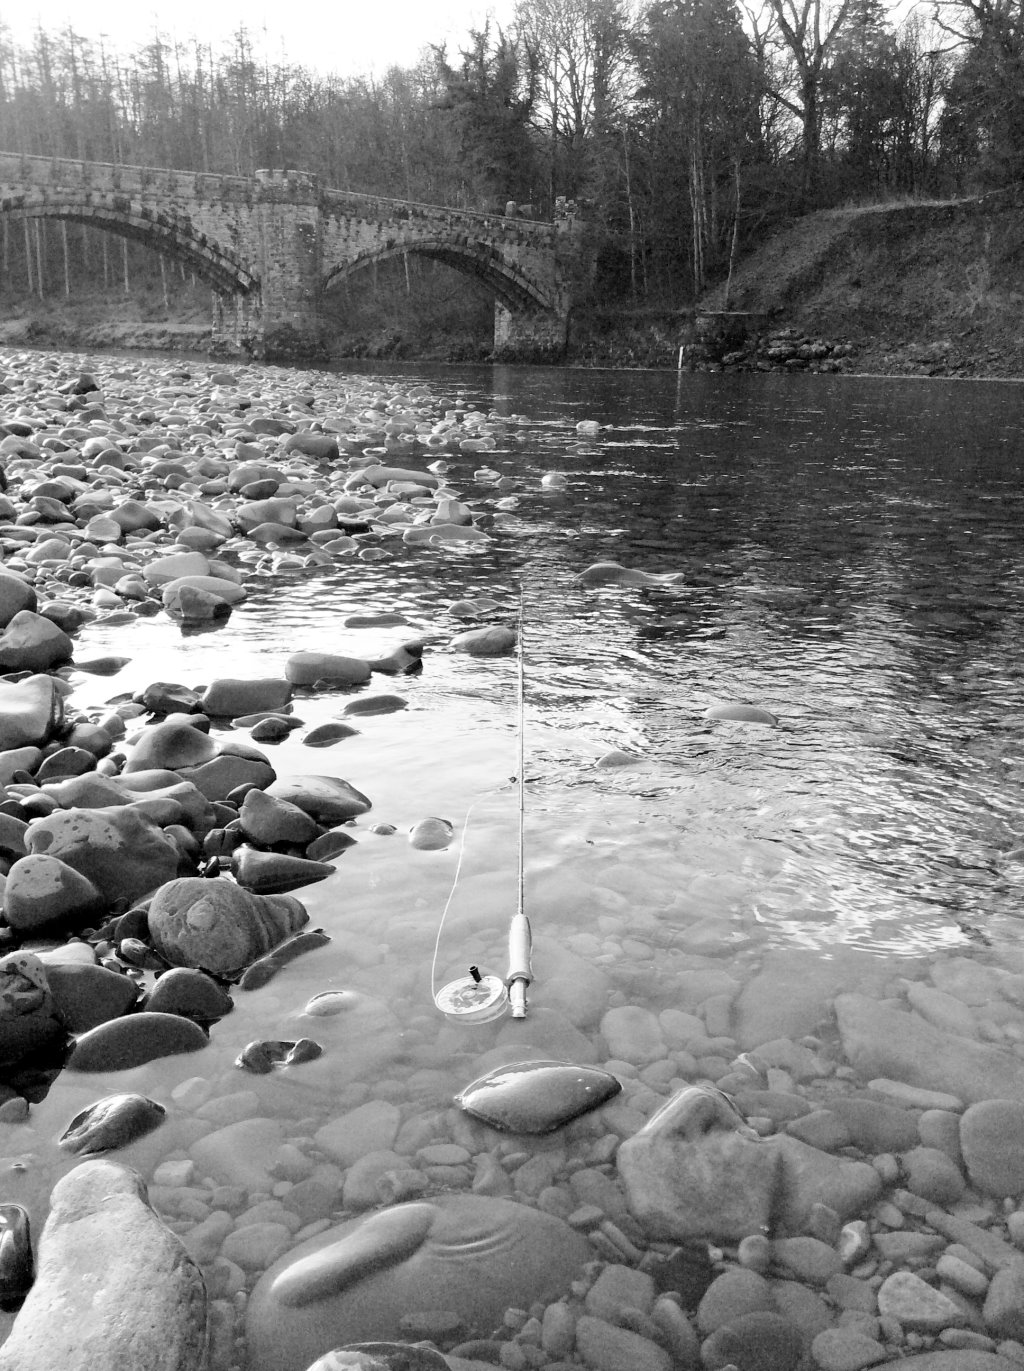 rod in river